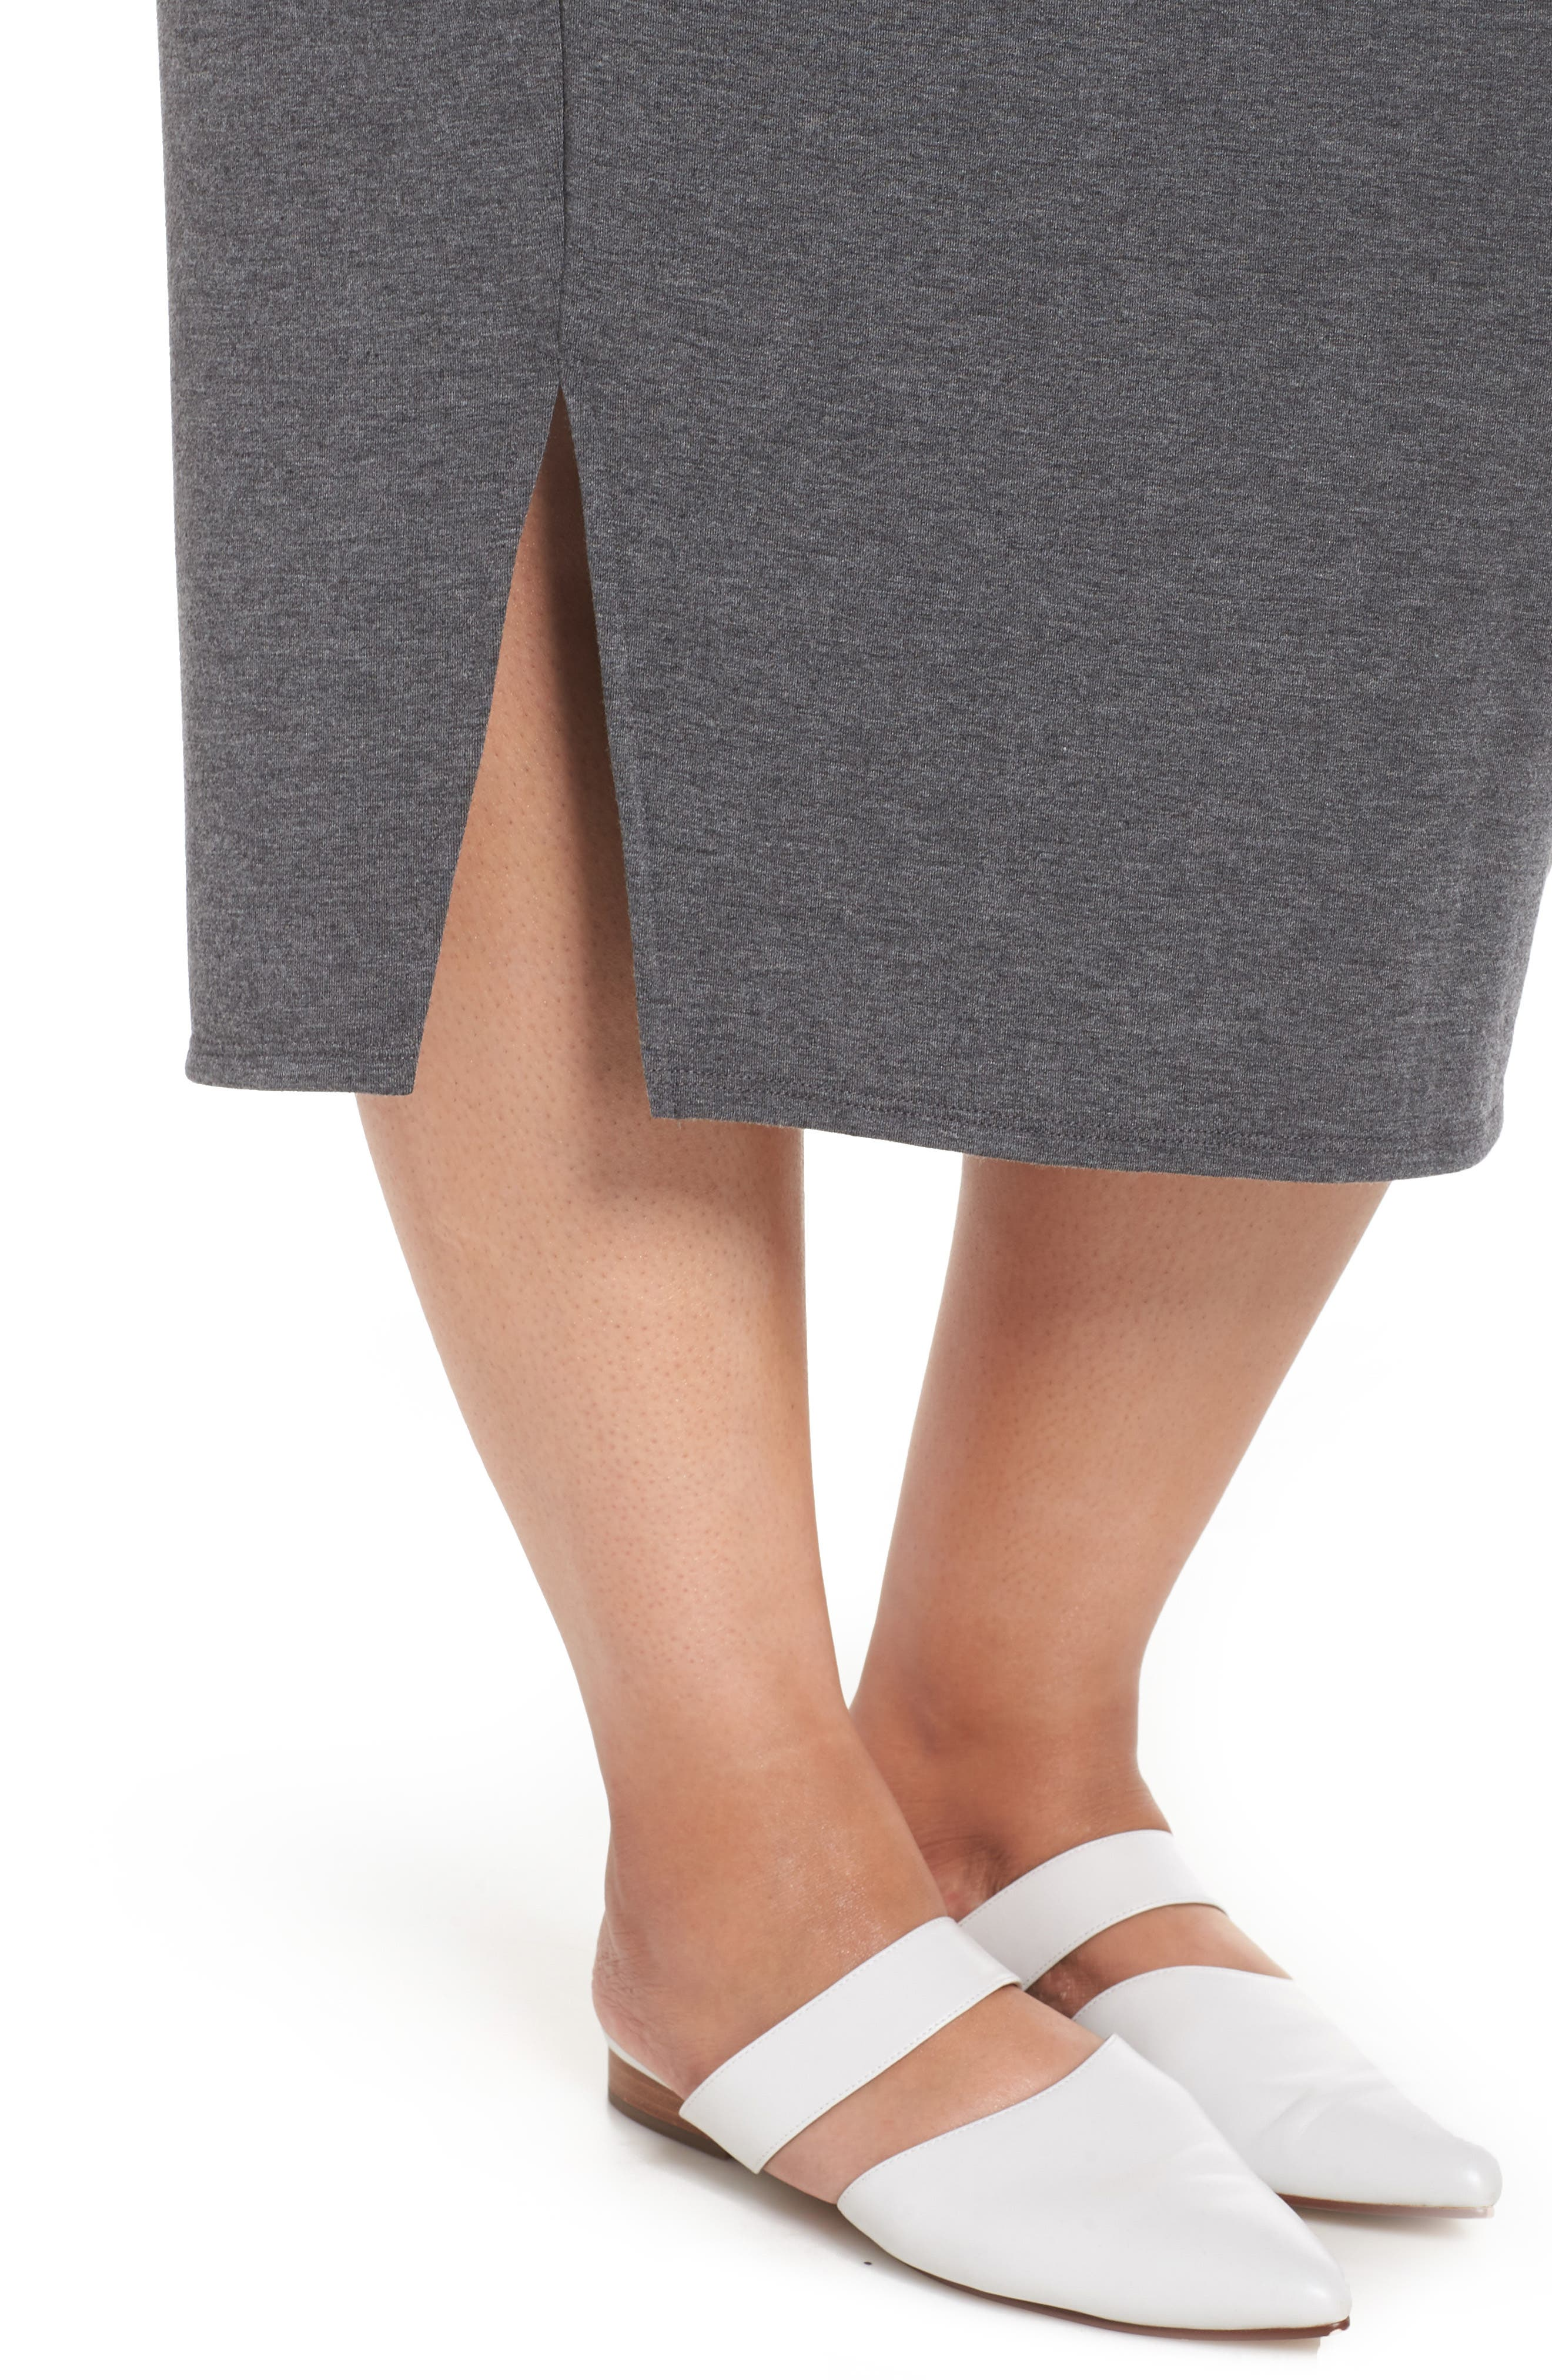 Off Duty Knit Skirt,                             Alternate thumbnail 4, color,                             GREY DARK CHARCOAL HEATHER